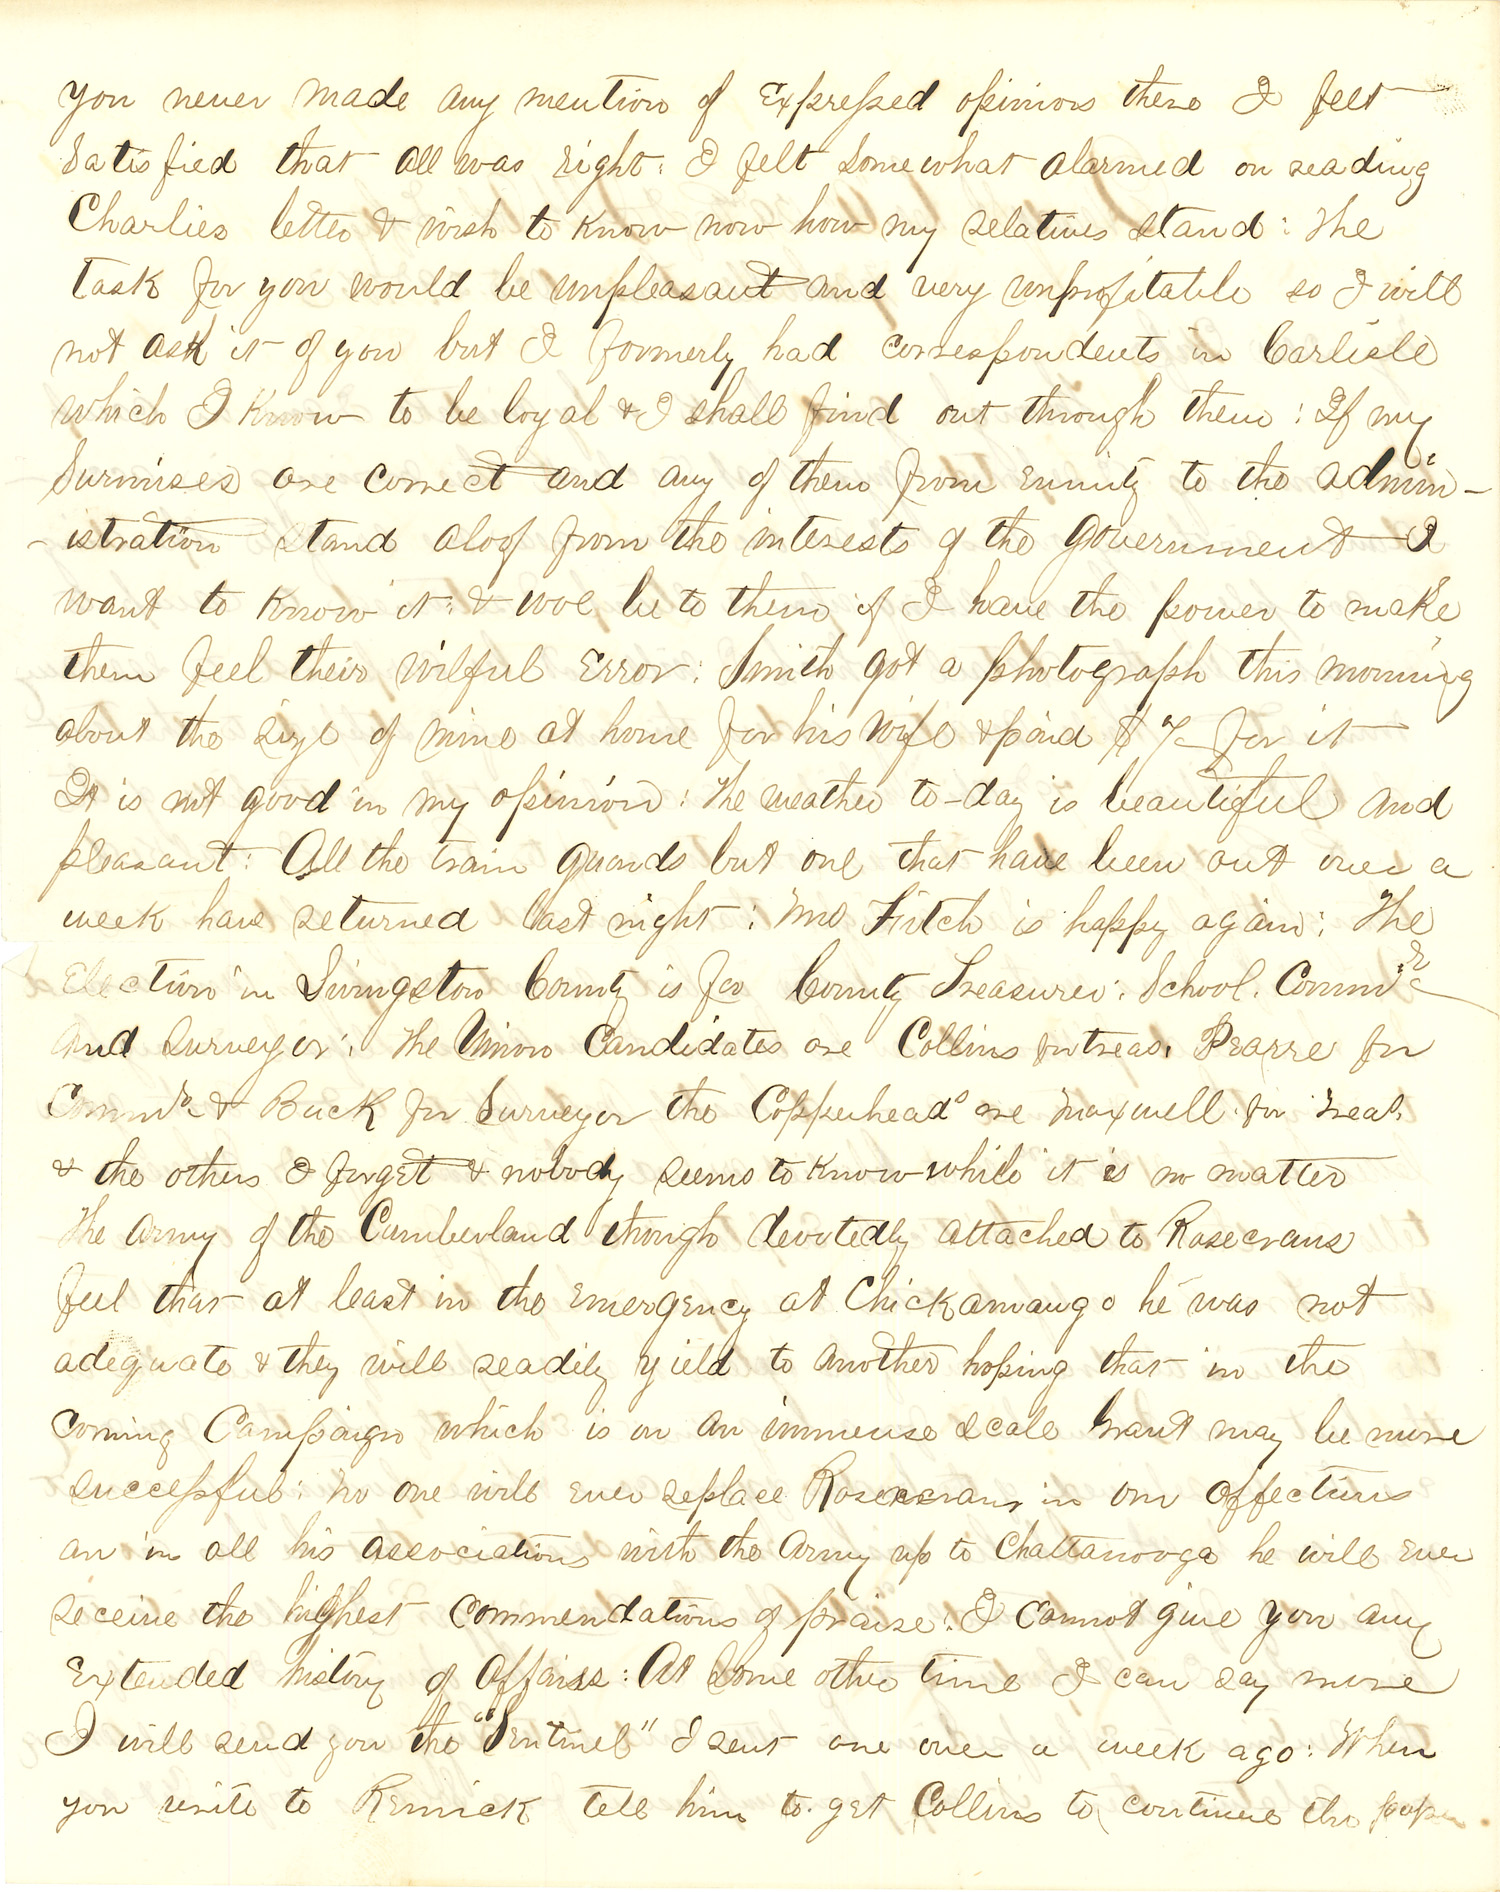 Joseph Culver Letter, October 29, 1863, Page 2